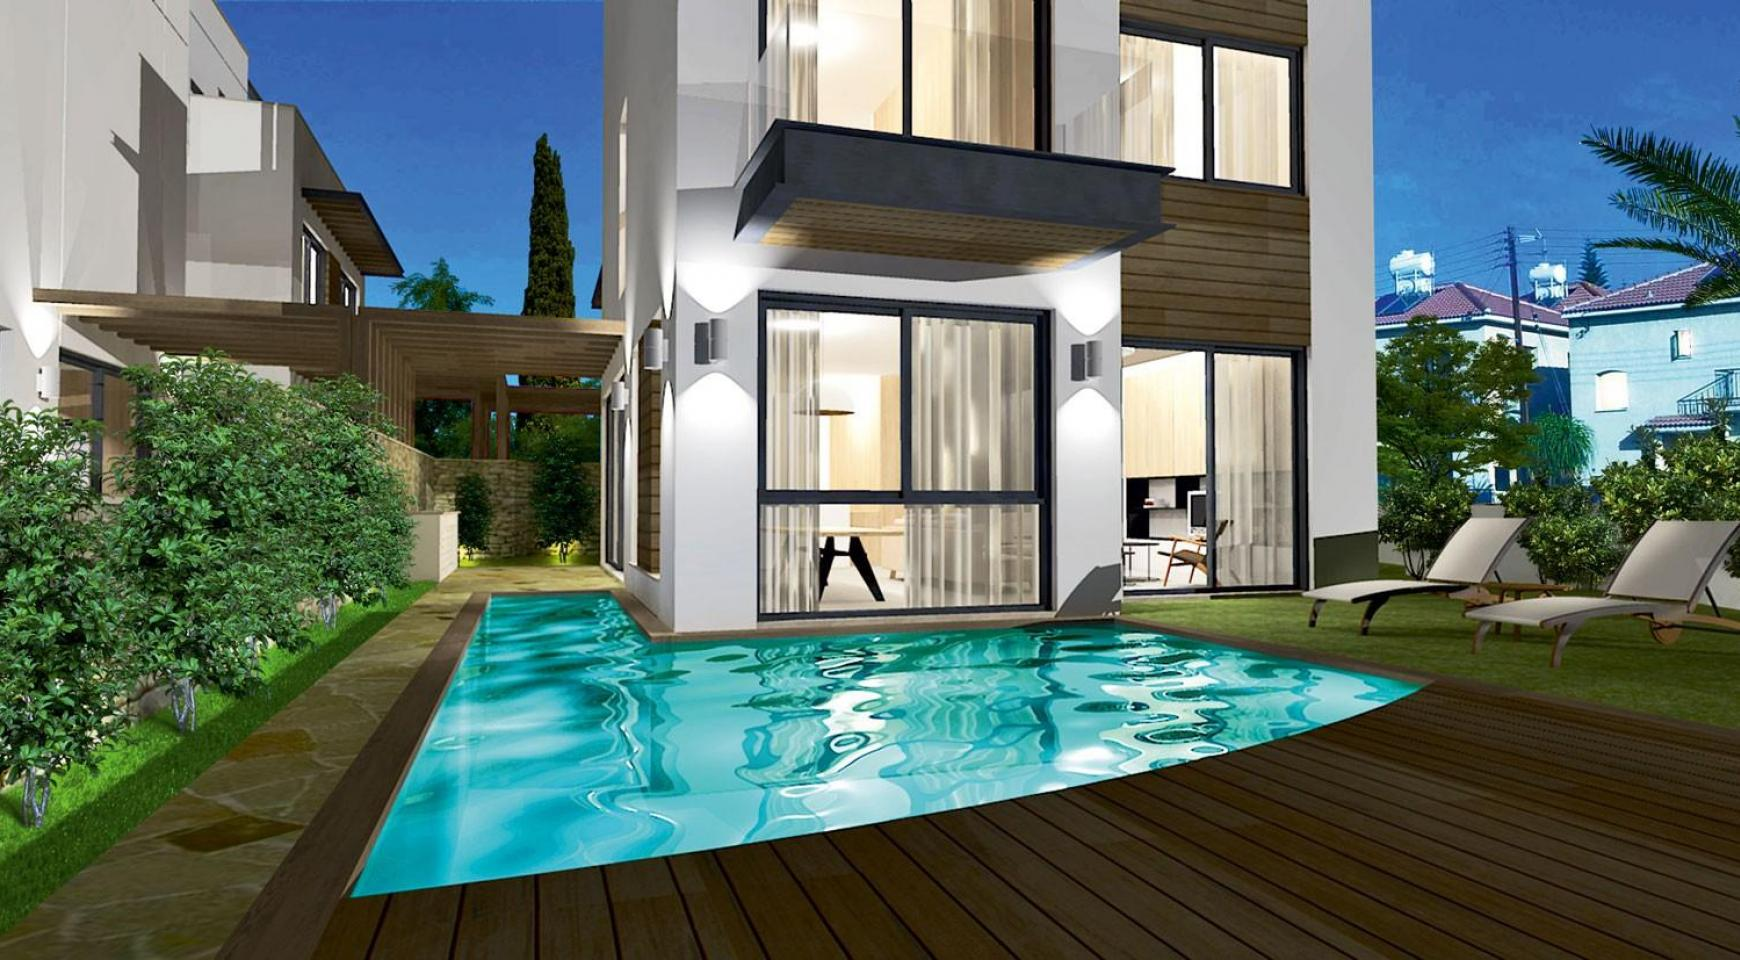 Spacious 4 Bedroom Villa in a New Complex in Agios Athanasios - 5